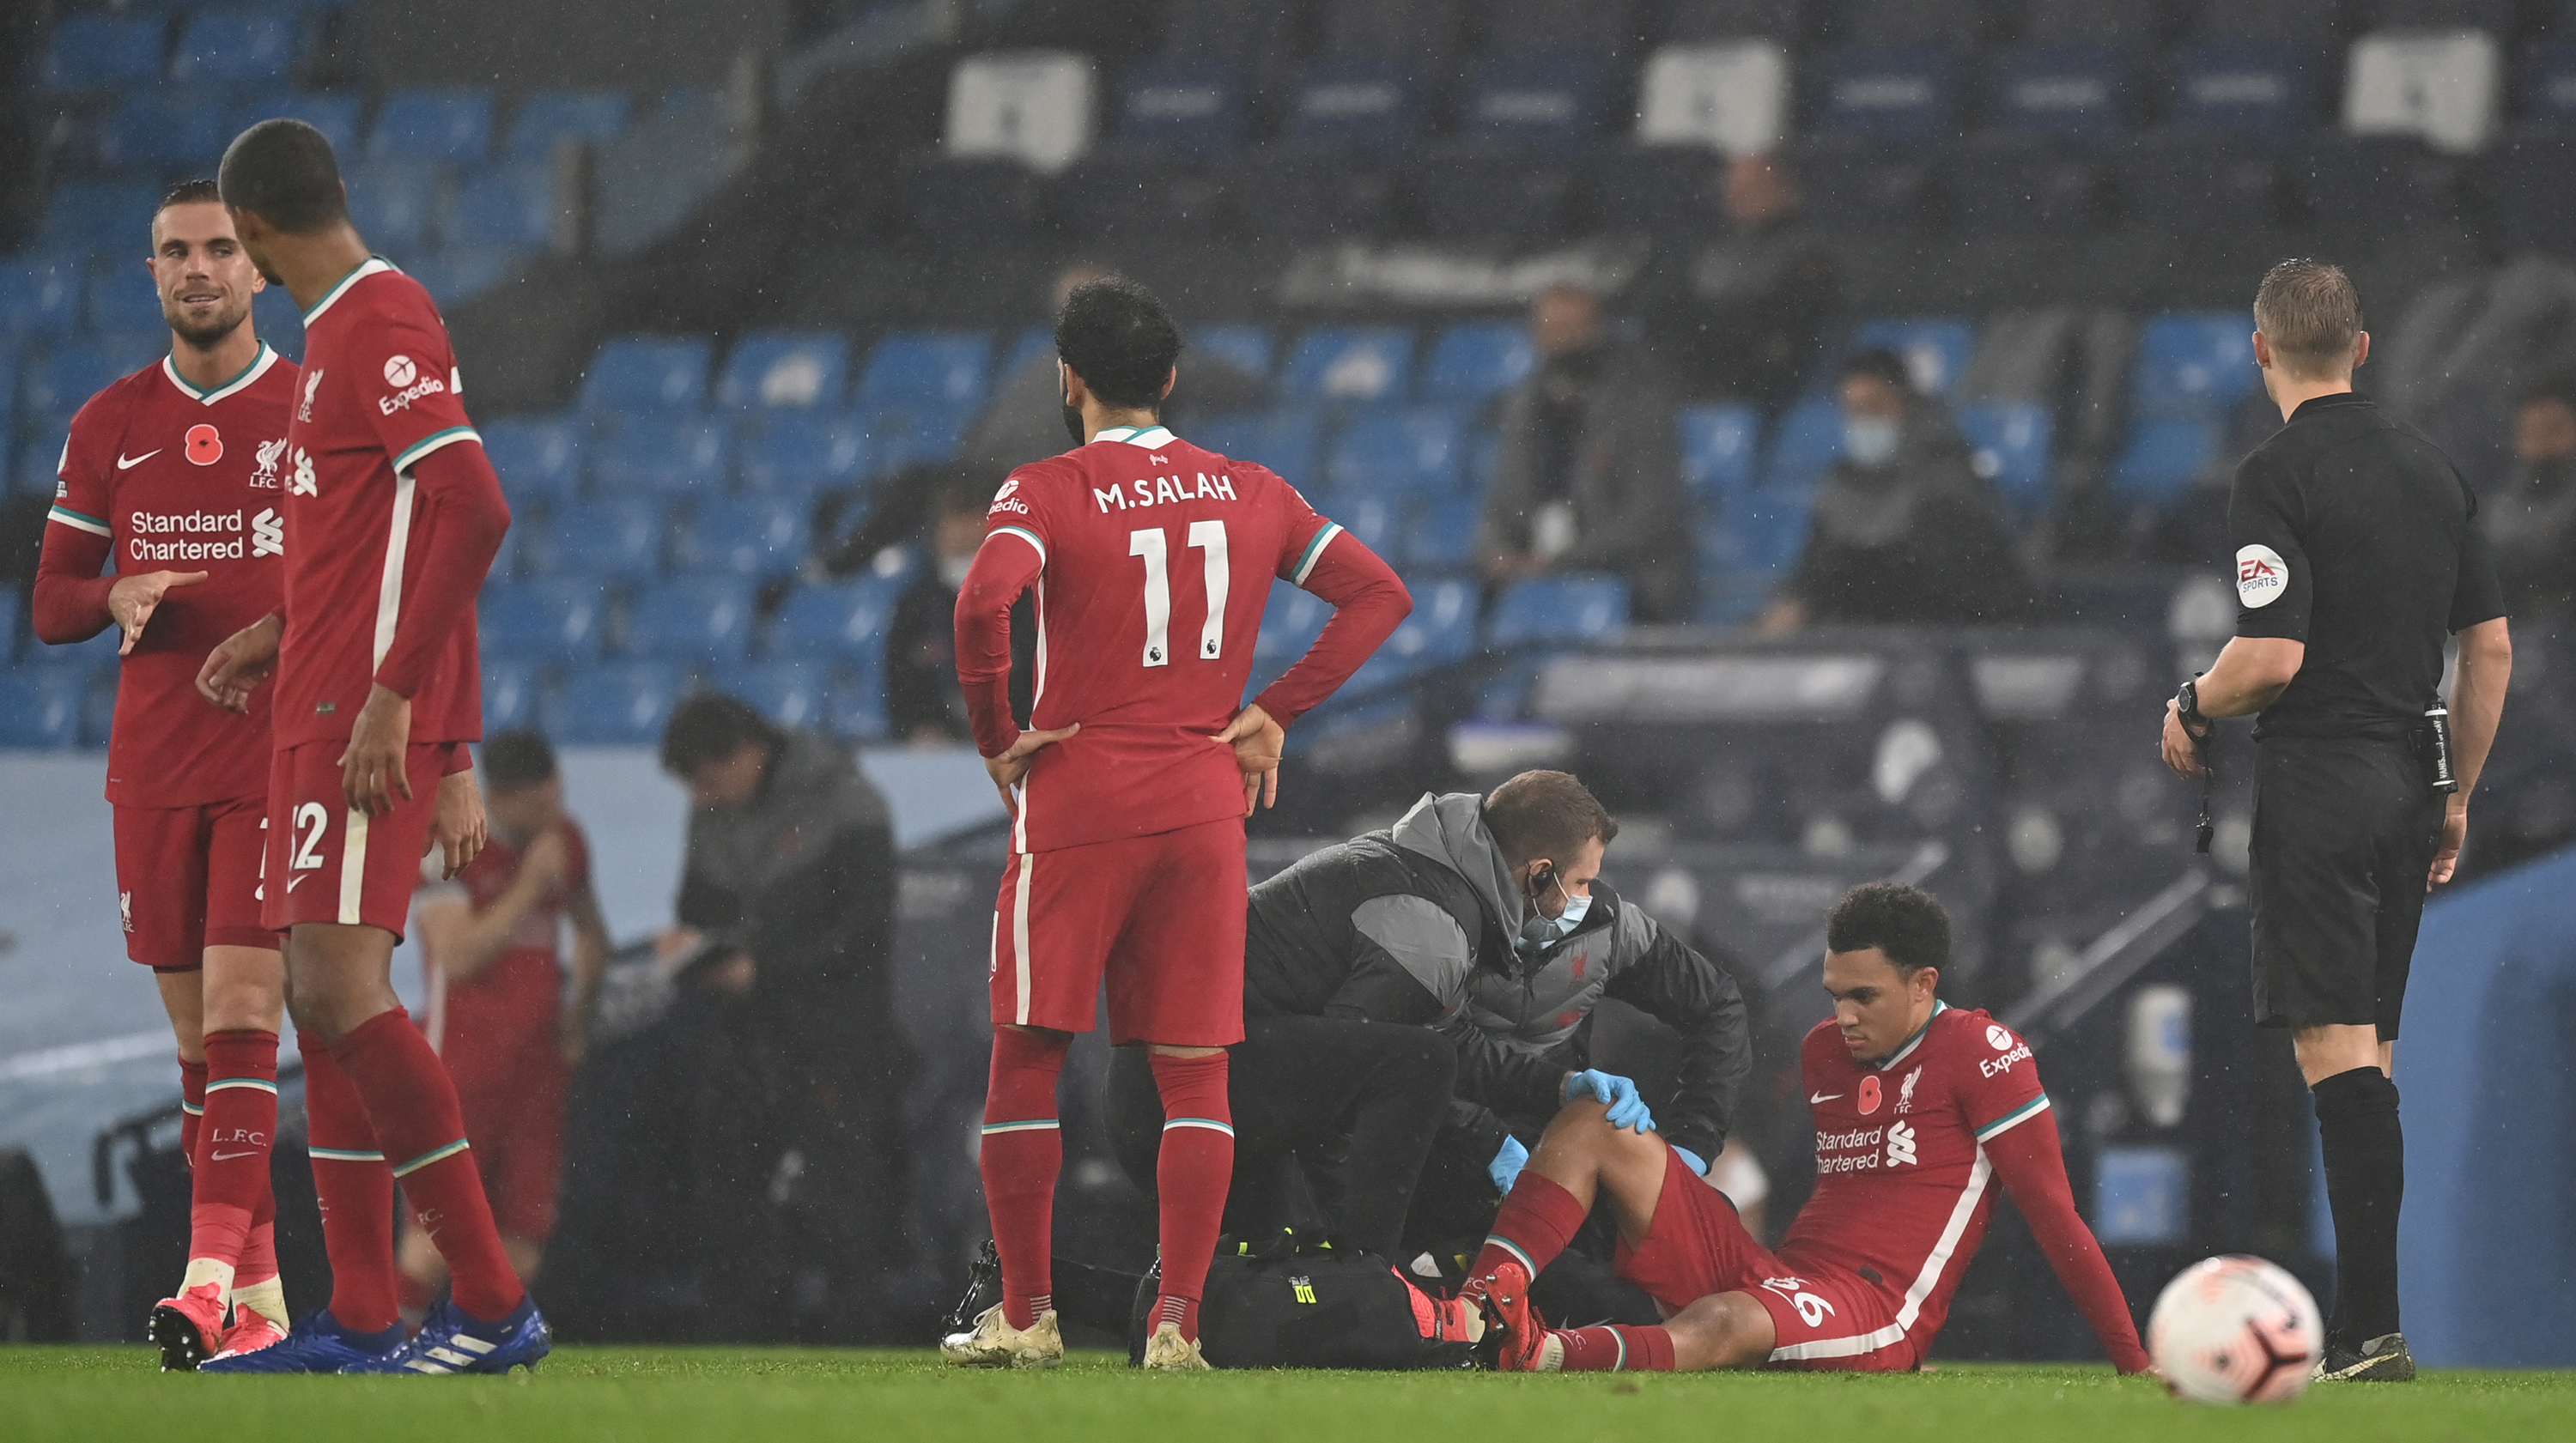 Trent Alexander-Arnold of Liverpool receives medical treatment during the Premier League match between Manchester City and Liverpool at Etihad Stadium on November 08, 2020